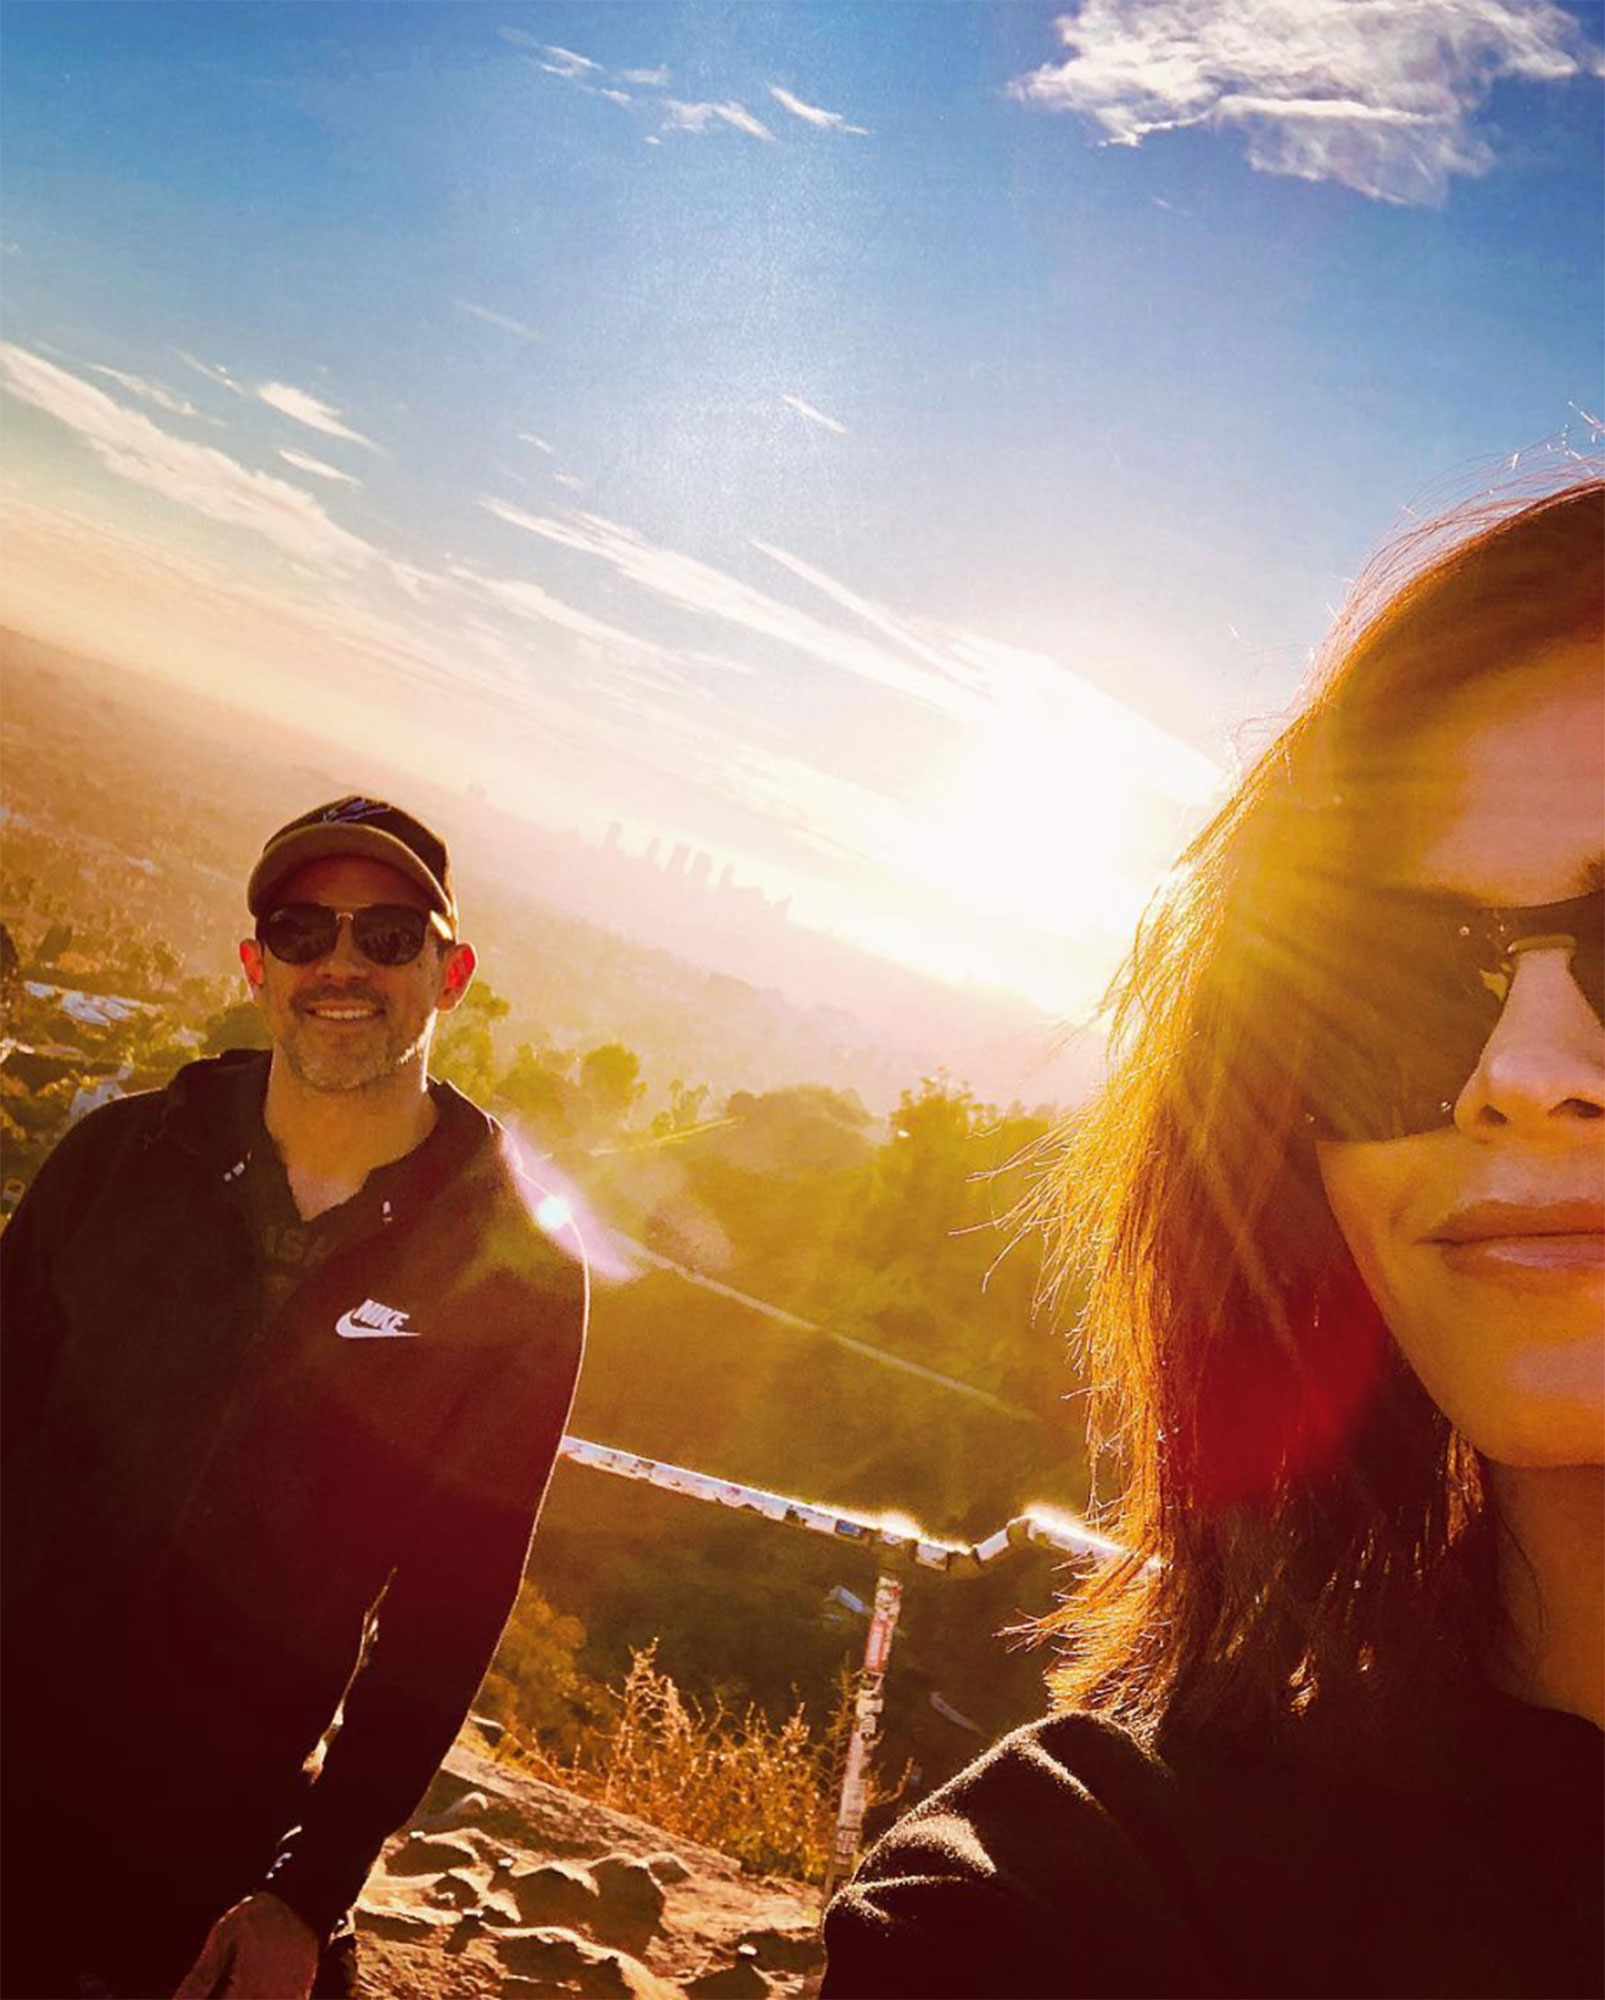 """Celebrity Couples of 2018 - Shortly after news of Tatum's relationship with Jessie J broke, Us confirmed in October that Dewan was seeing the Tony winner. Kazee gushed about his new love on her 38th birthday in December: """"Happy Birthday Jenna! Somehow it feels like my birthday over and over again because I keep getting the gift of you every day."""""""